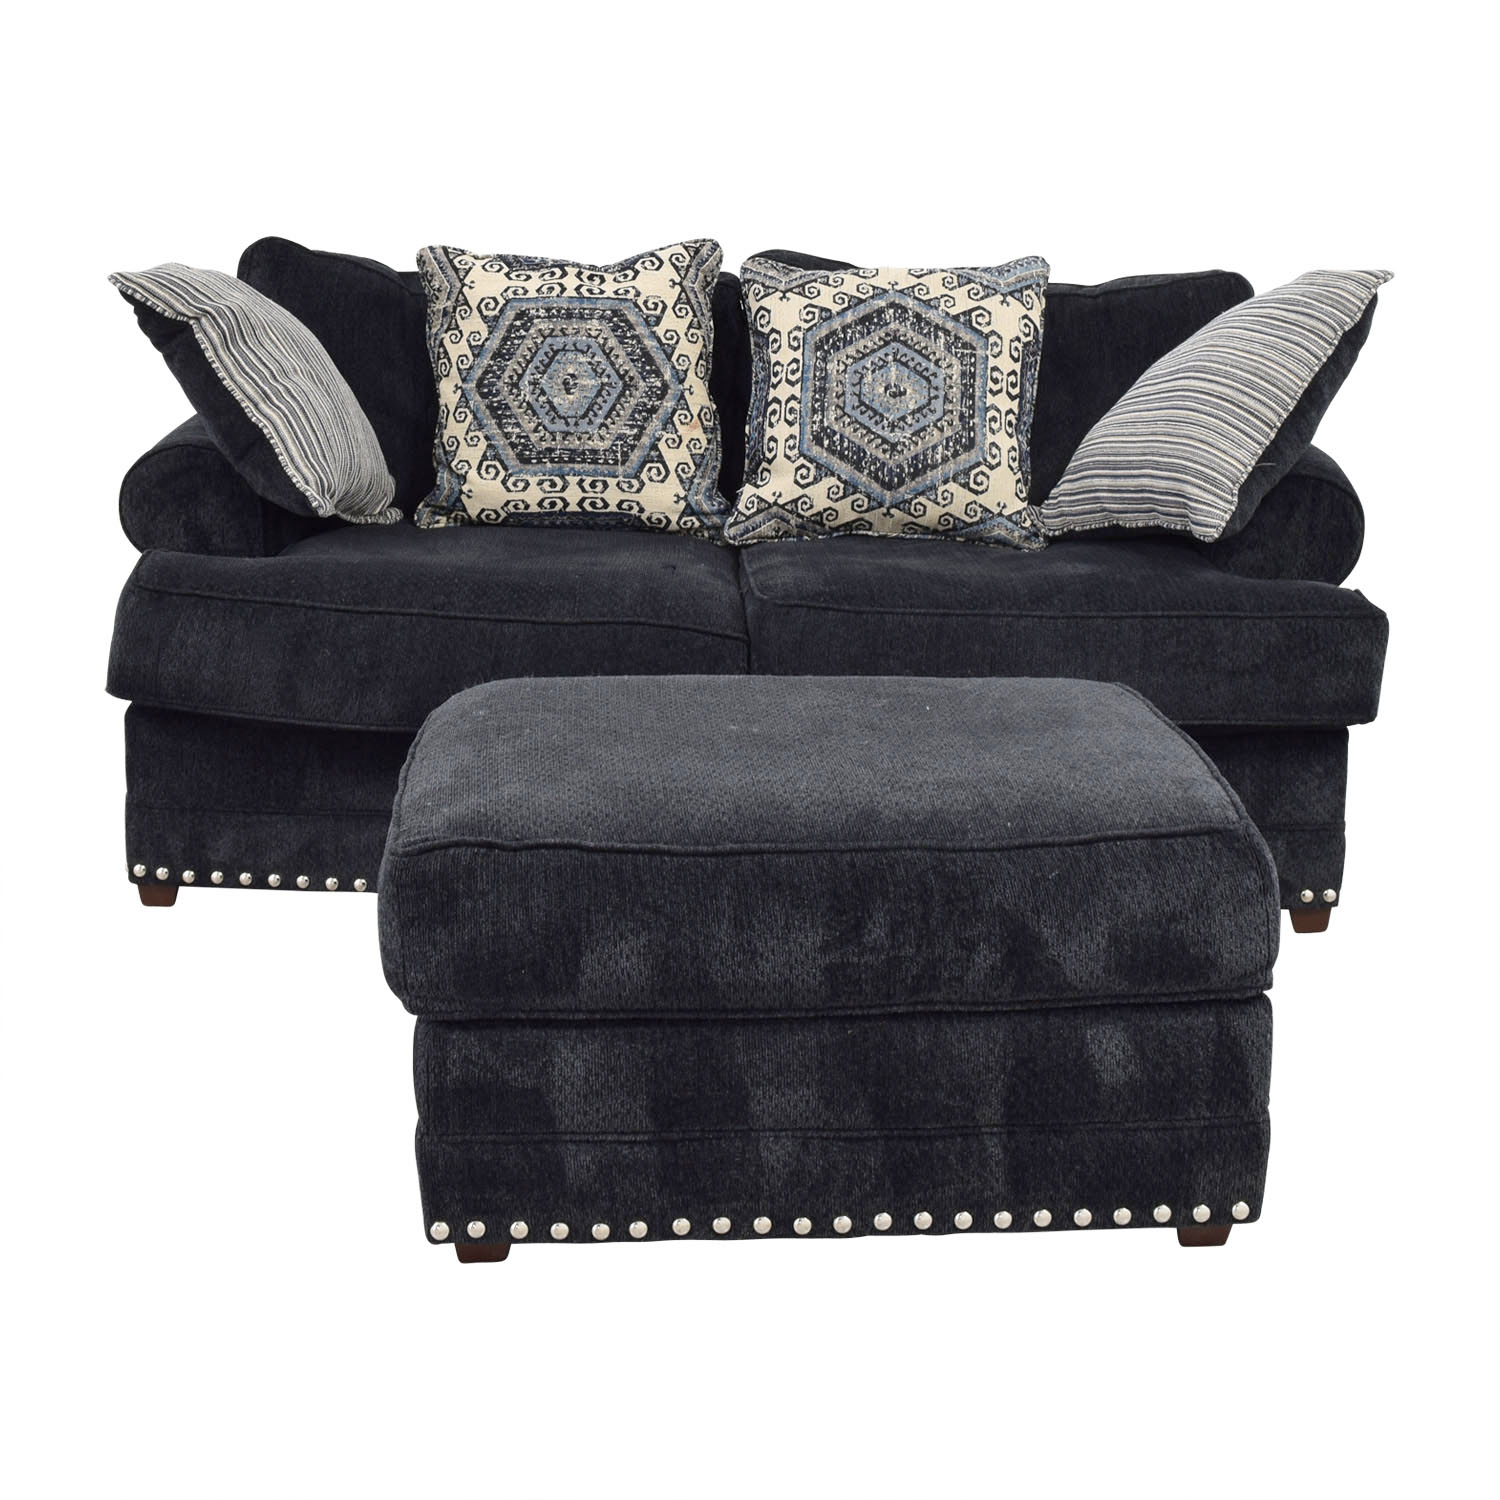 Bobs Furniture Bobs Furniture Dakota Navy Nailhead Loveseat with Ottoman nj